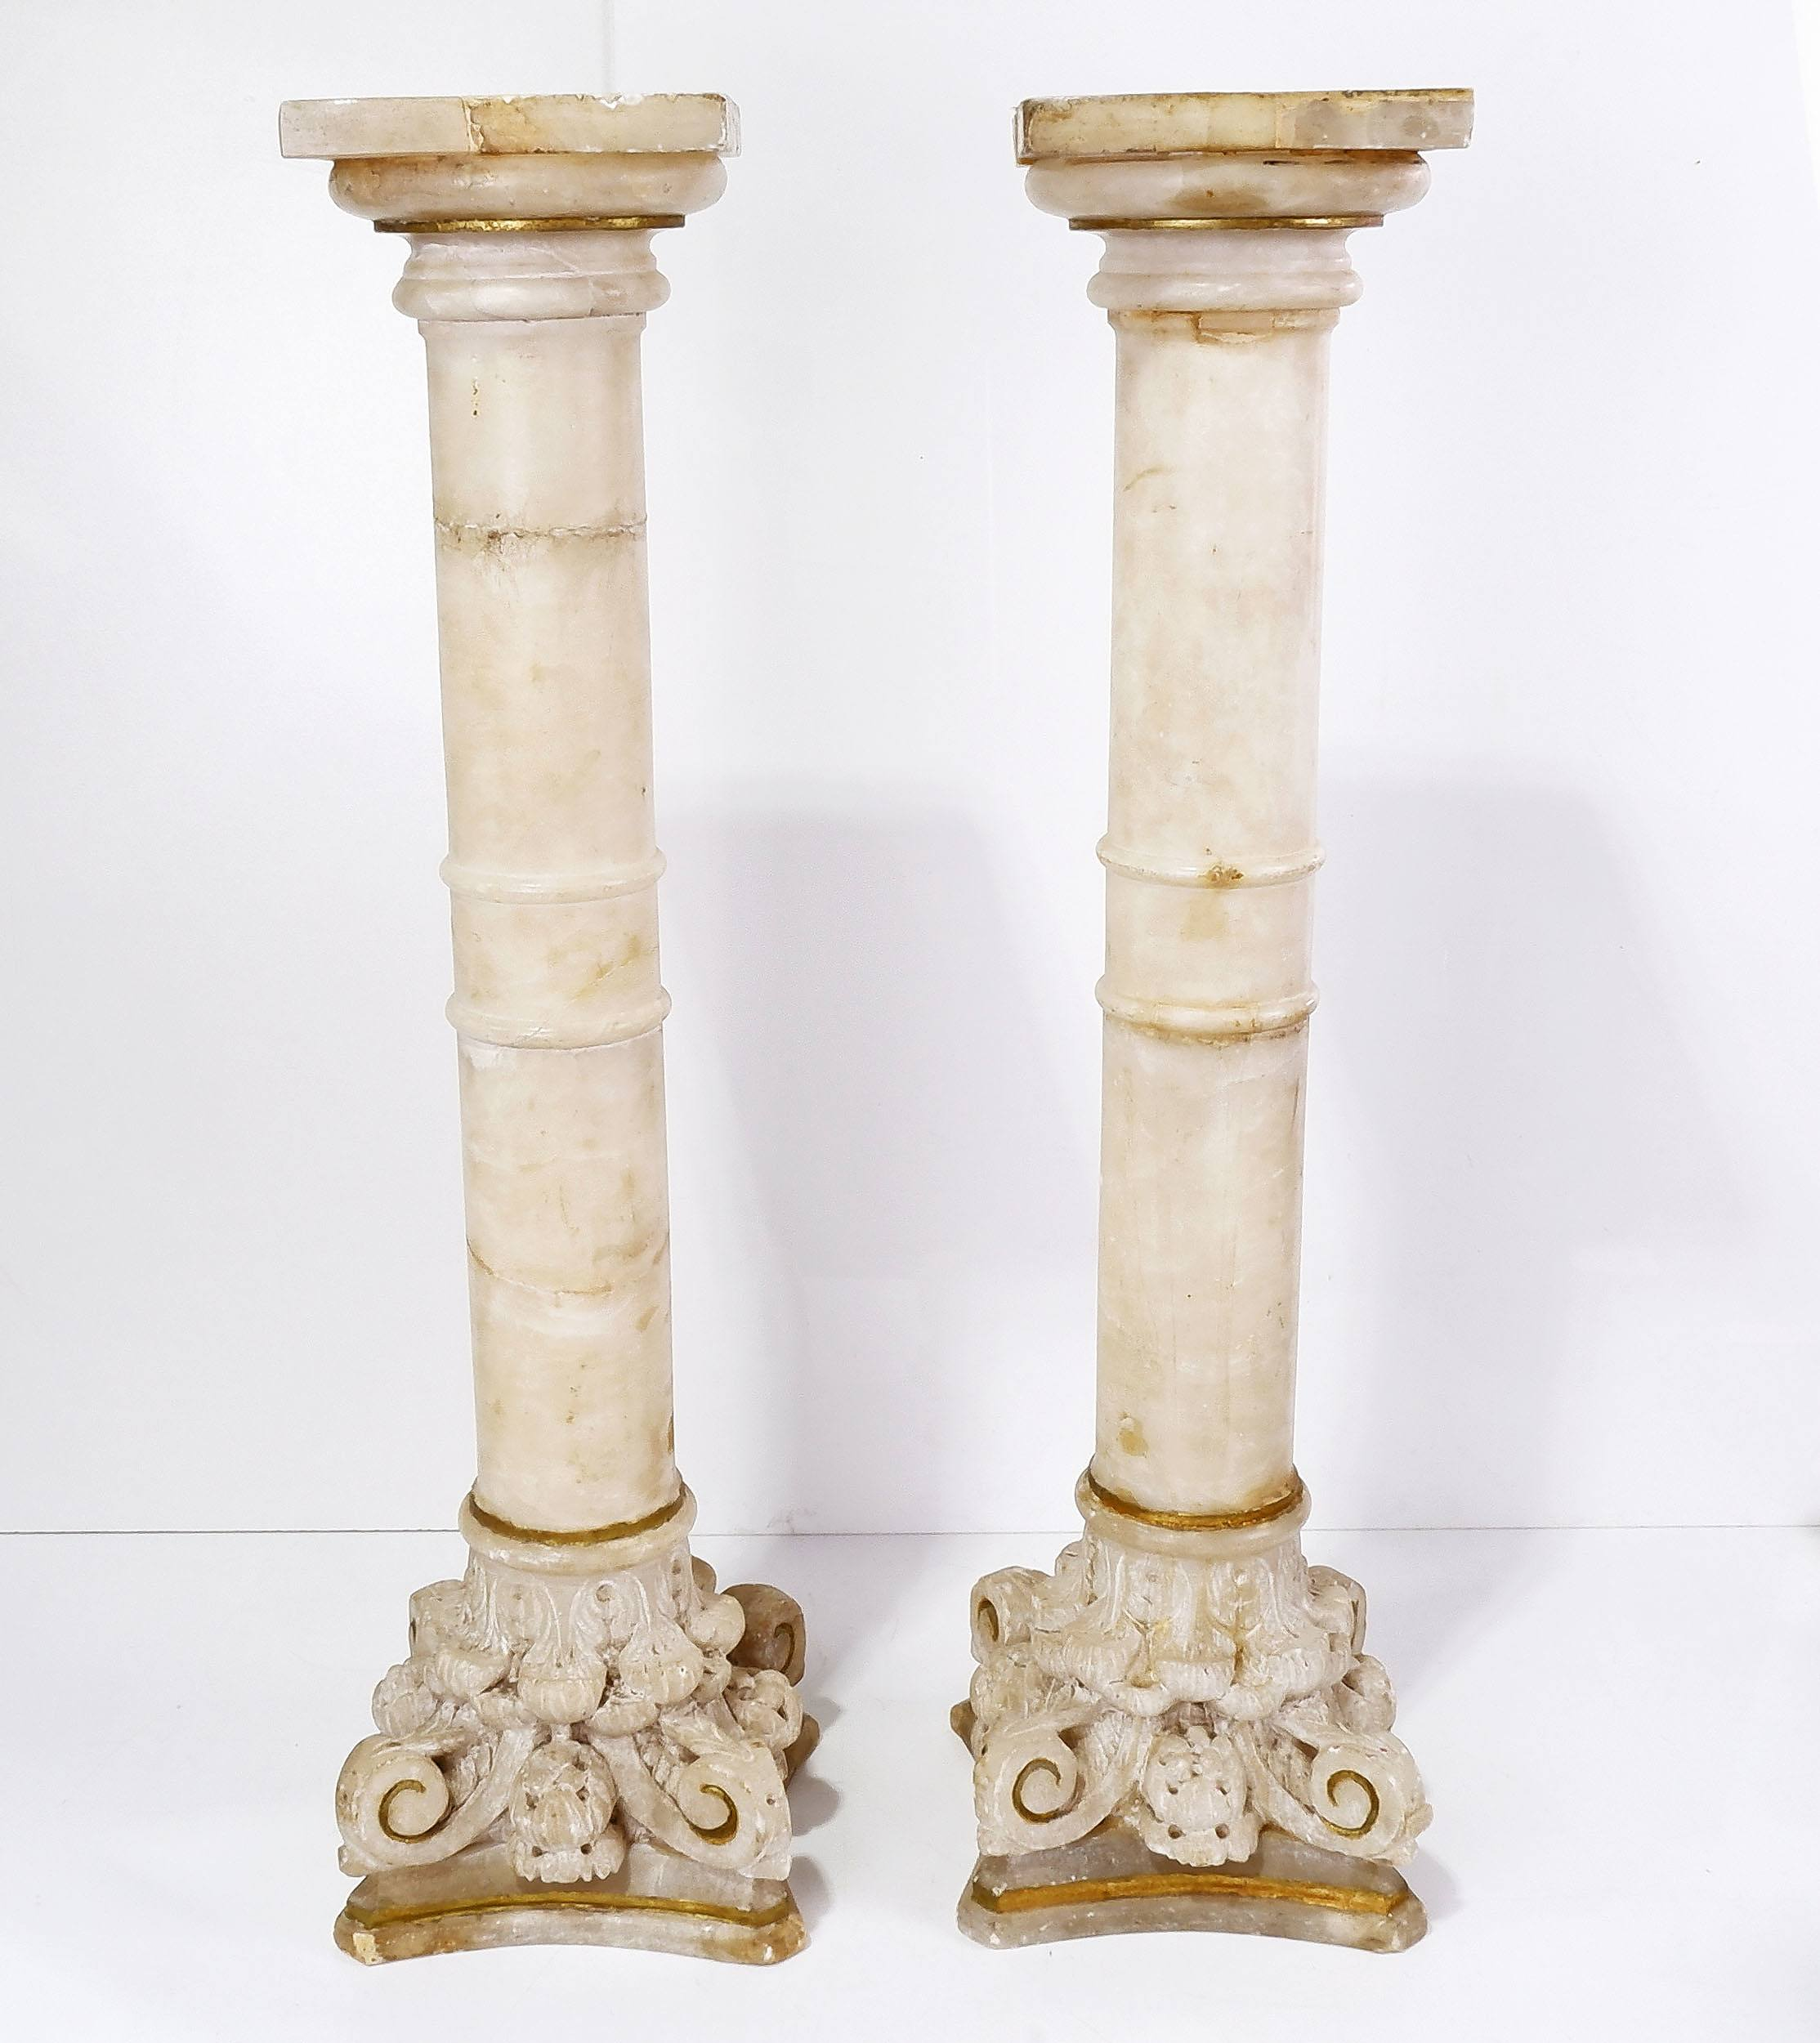 'Pair of Antique Carved Classical Alabaster Columns '